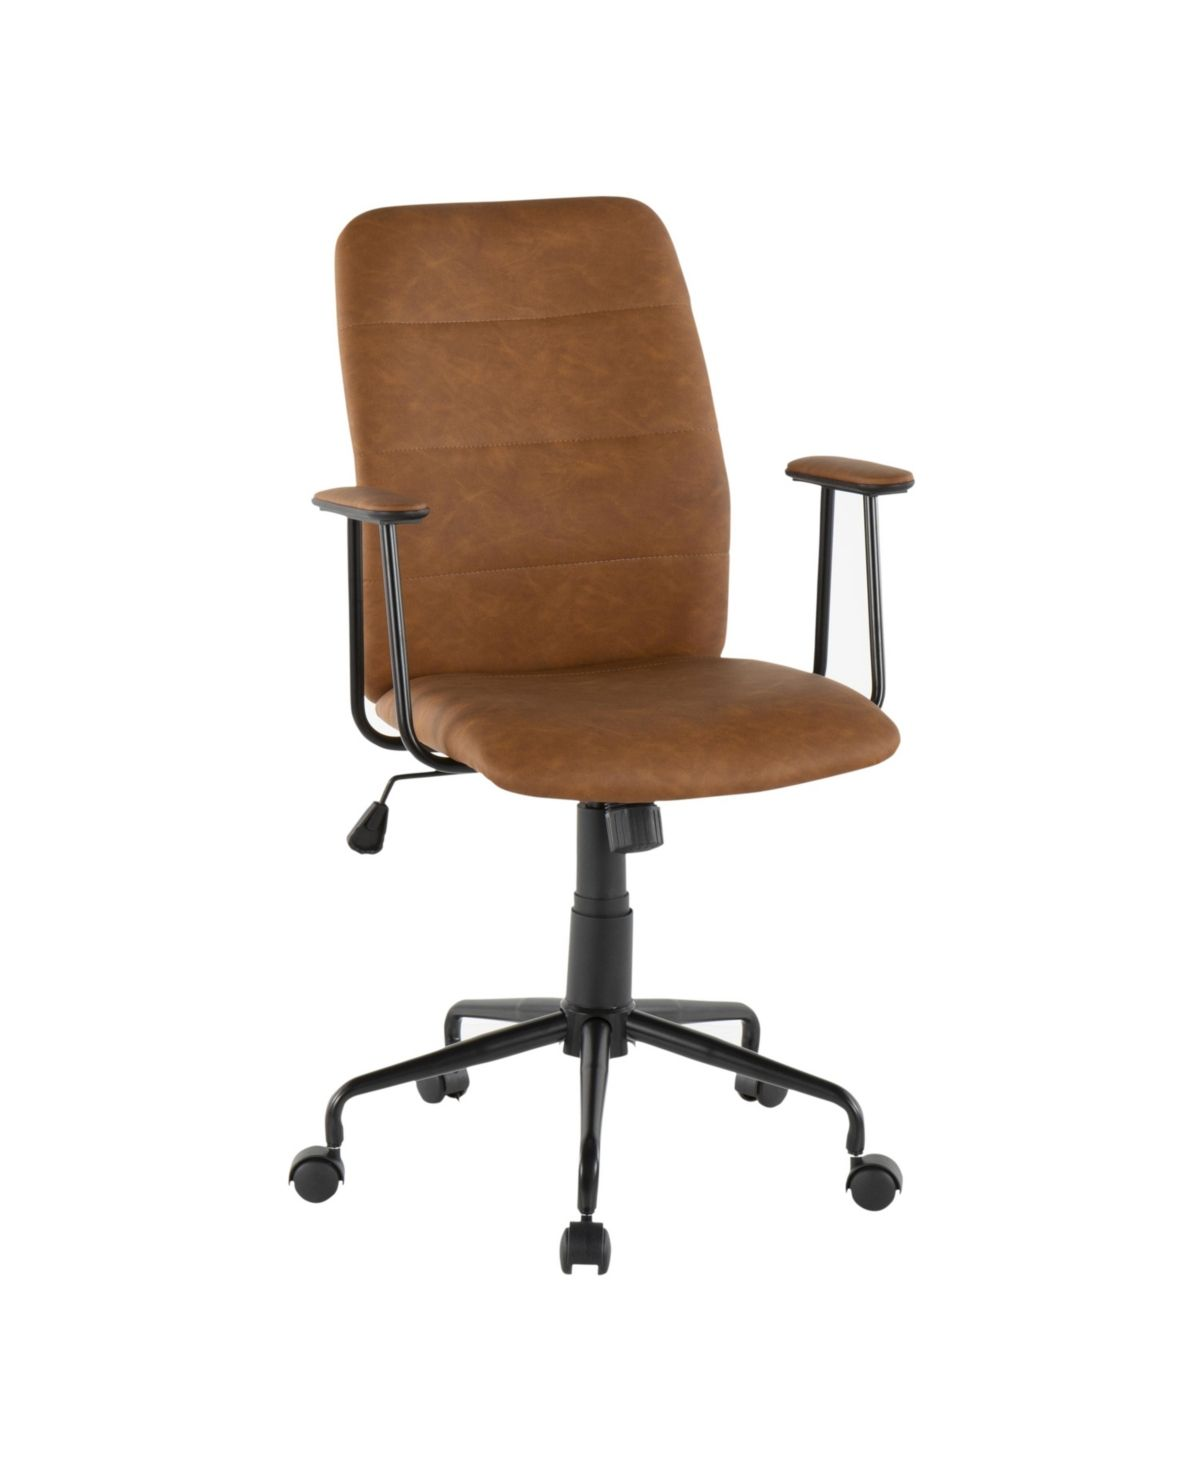 Lumisource Fredrick Office Chair Reviews Furniture Macy S Contemporary Office Chairs Chair Contemporary Office